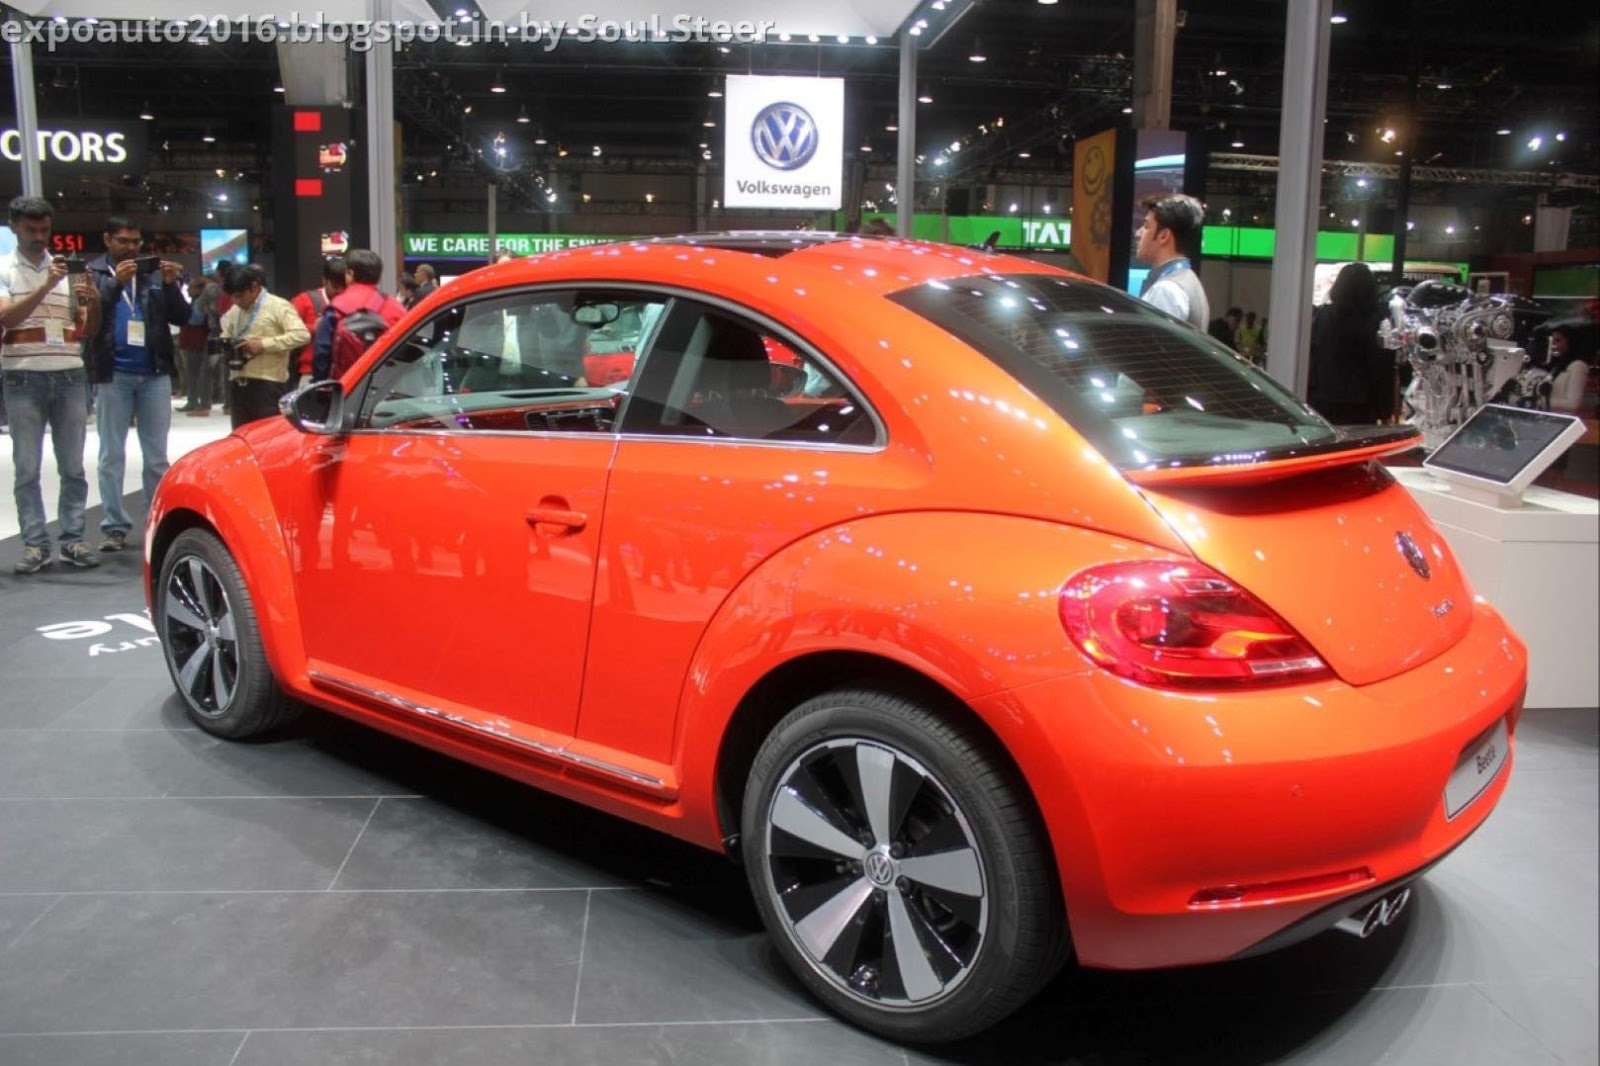 auto expo 2016 by soulsteer orange volkswagen beetle a5 compact coupe on display at auto expo. Black Bedroom Furniture Sets. Home Design Ideas